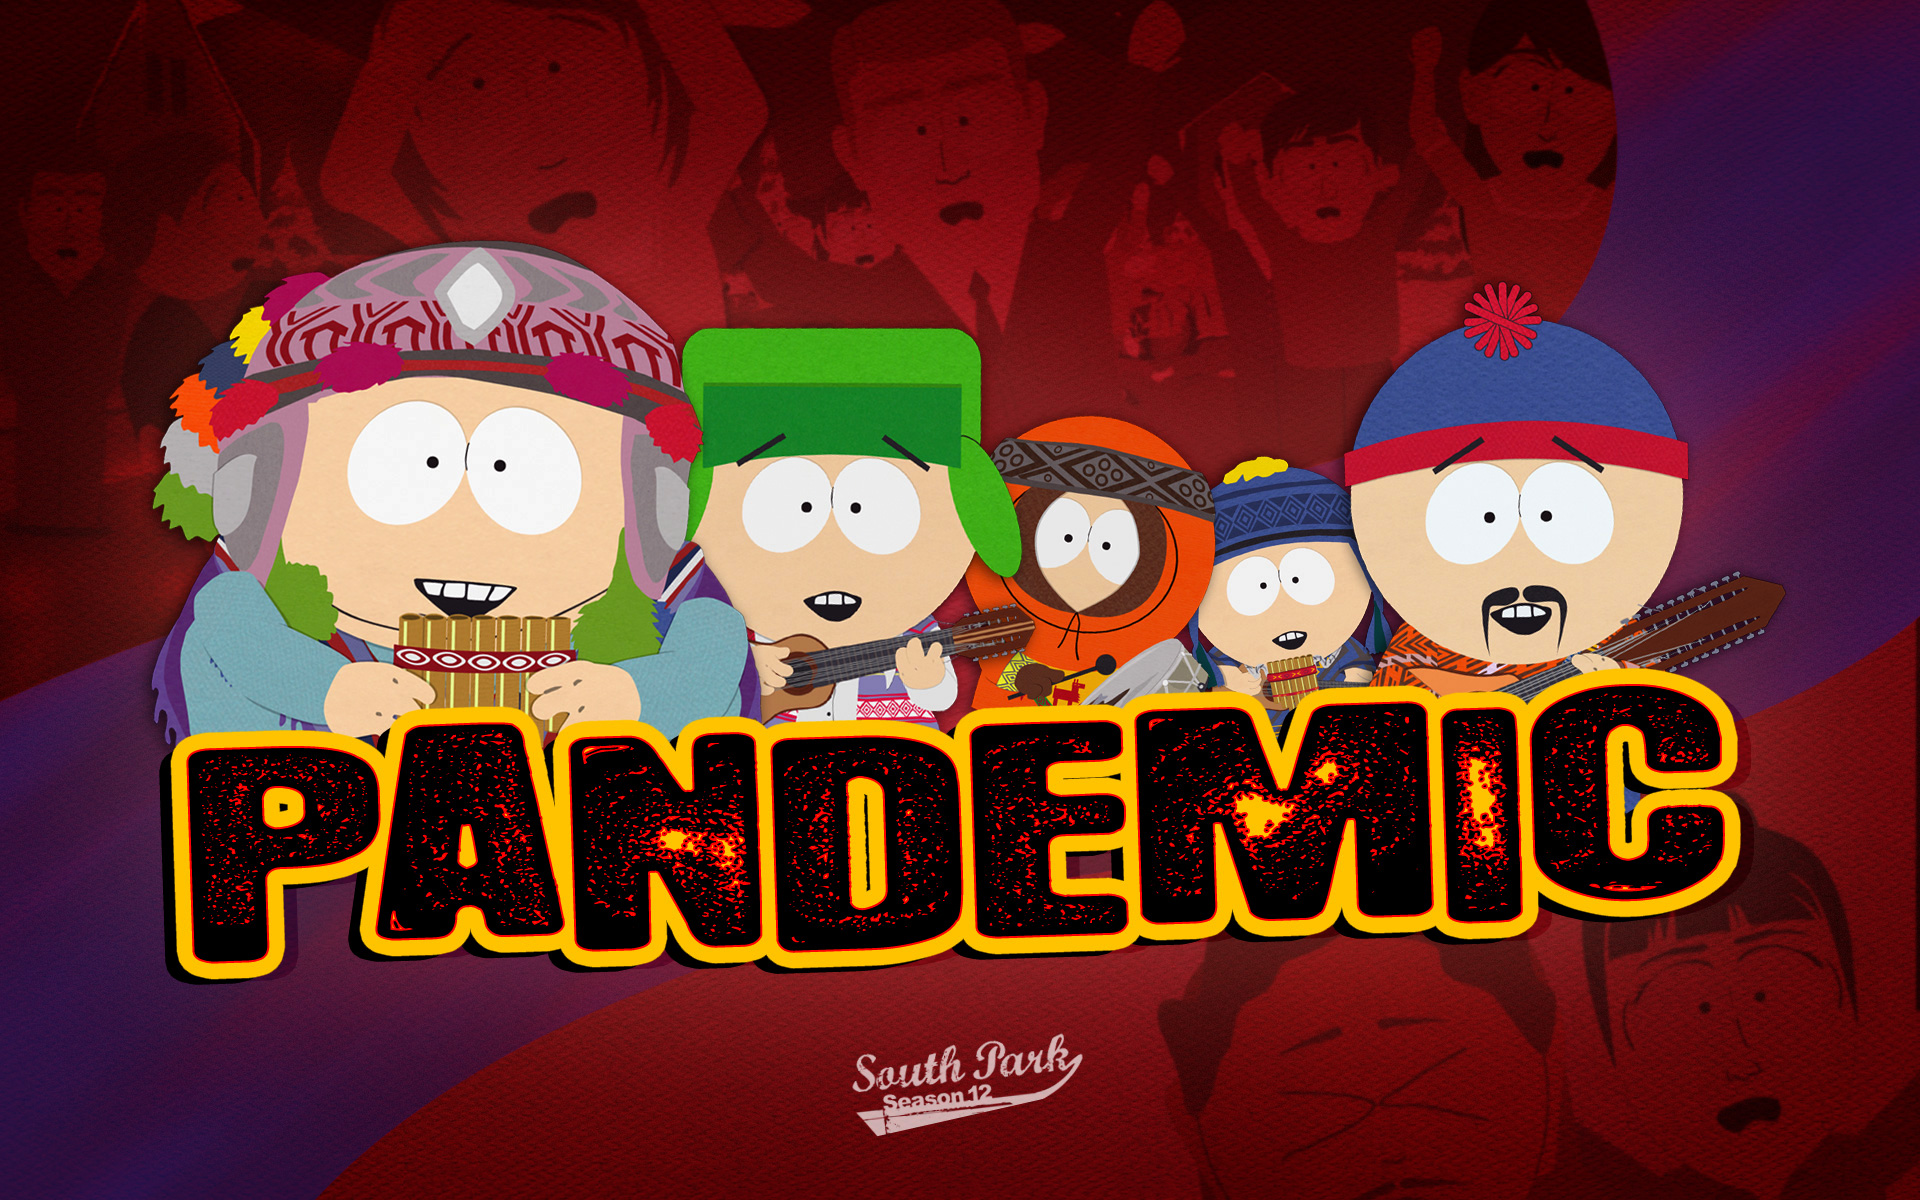 south park wallpapers wallpaper pandemic computer images 1920x1200